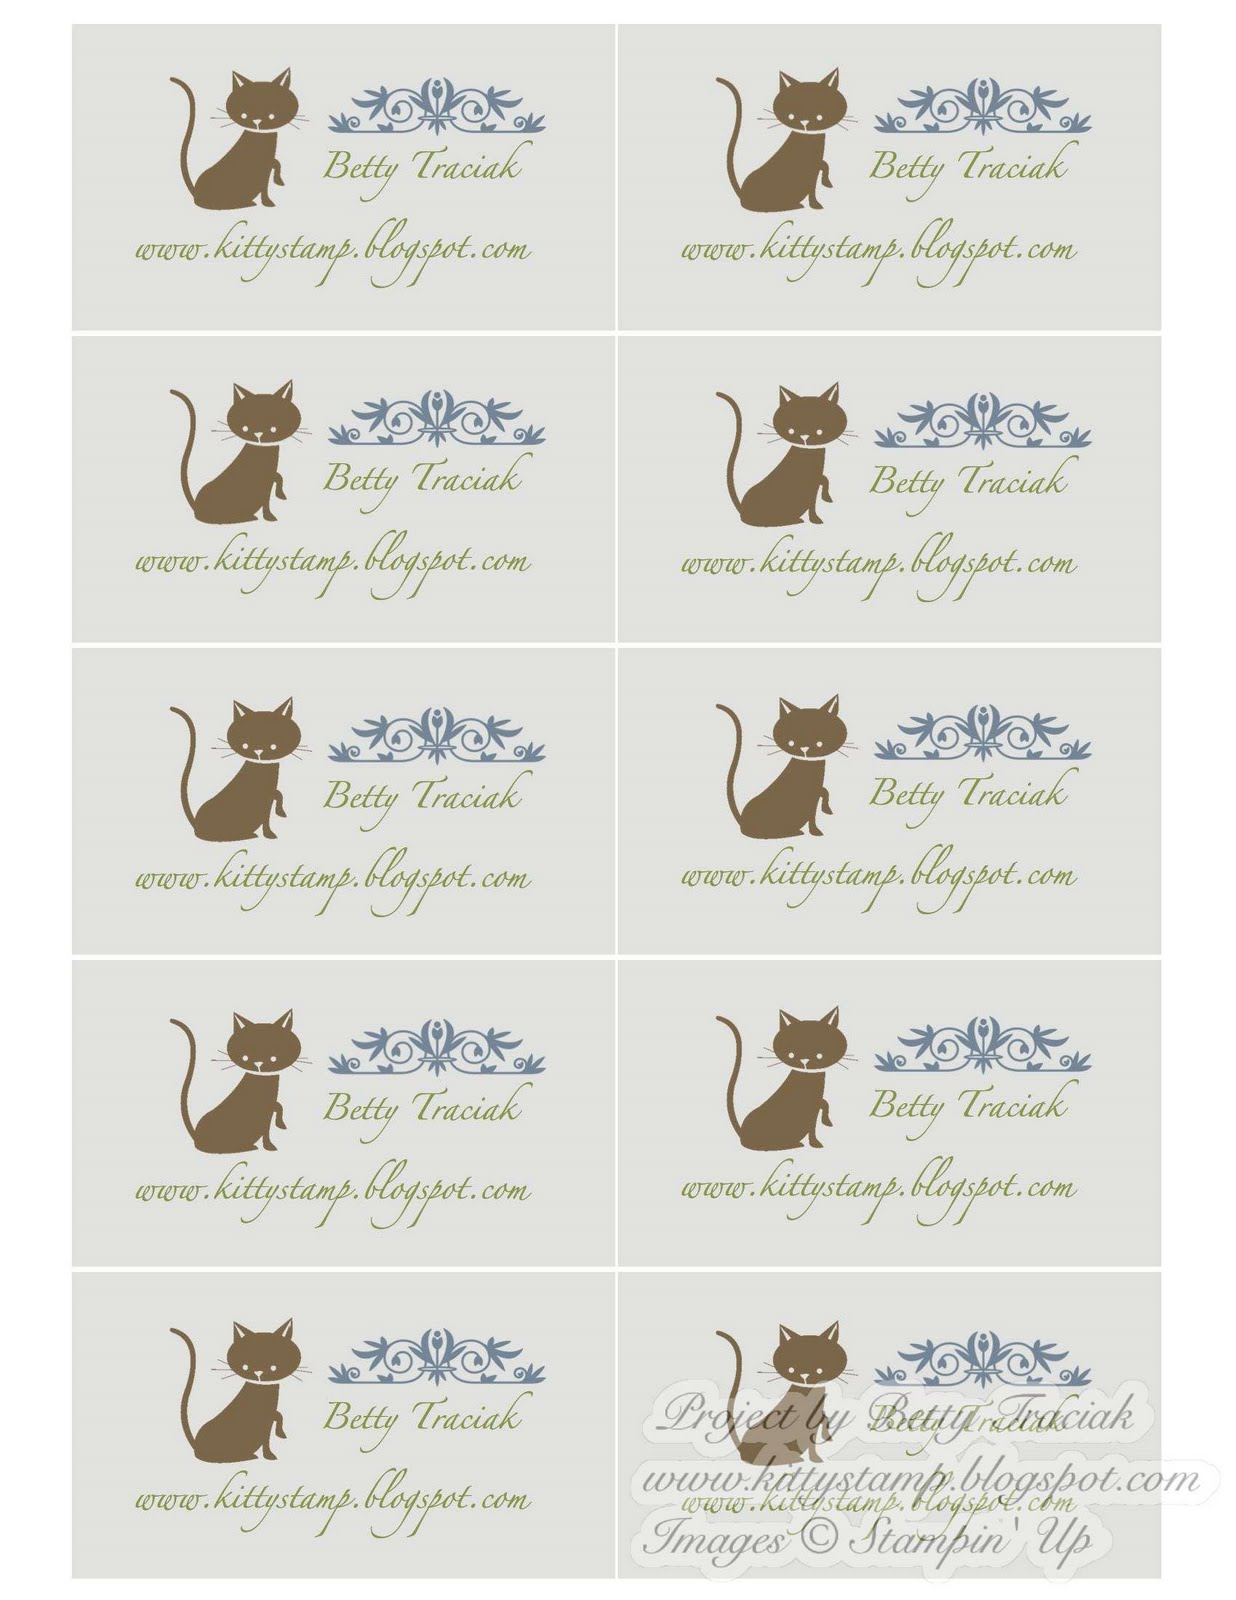 Kitty Stamp Tutorial for Making Business Cards with My